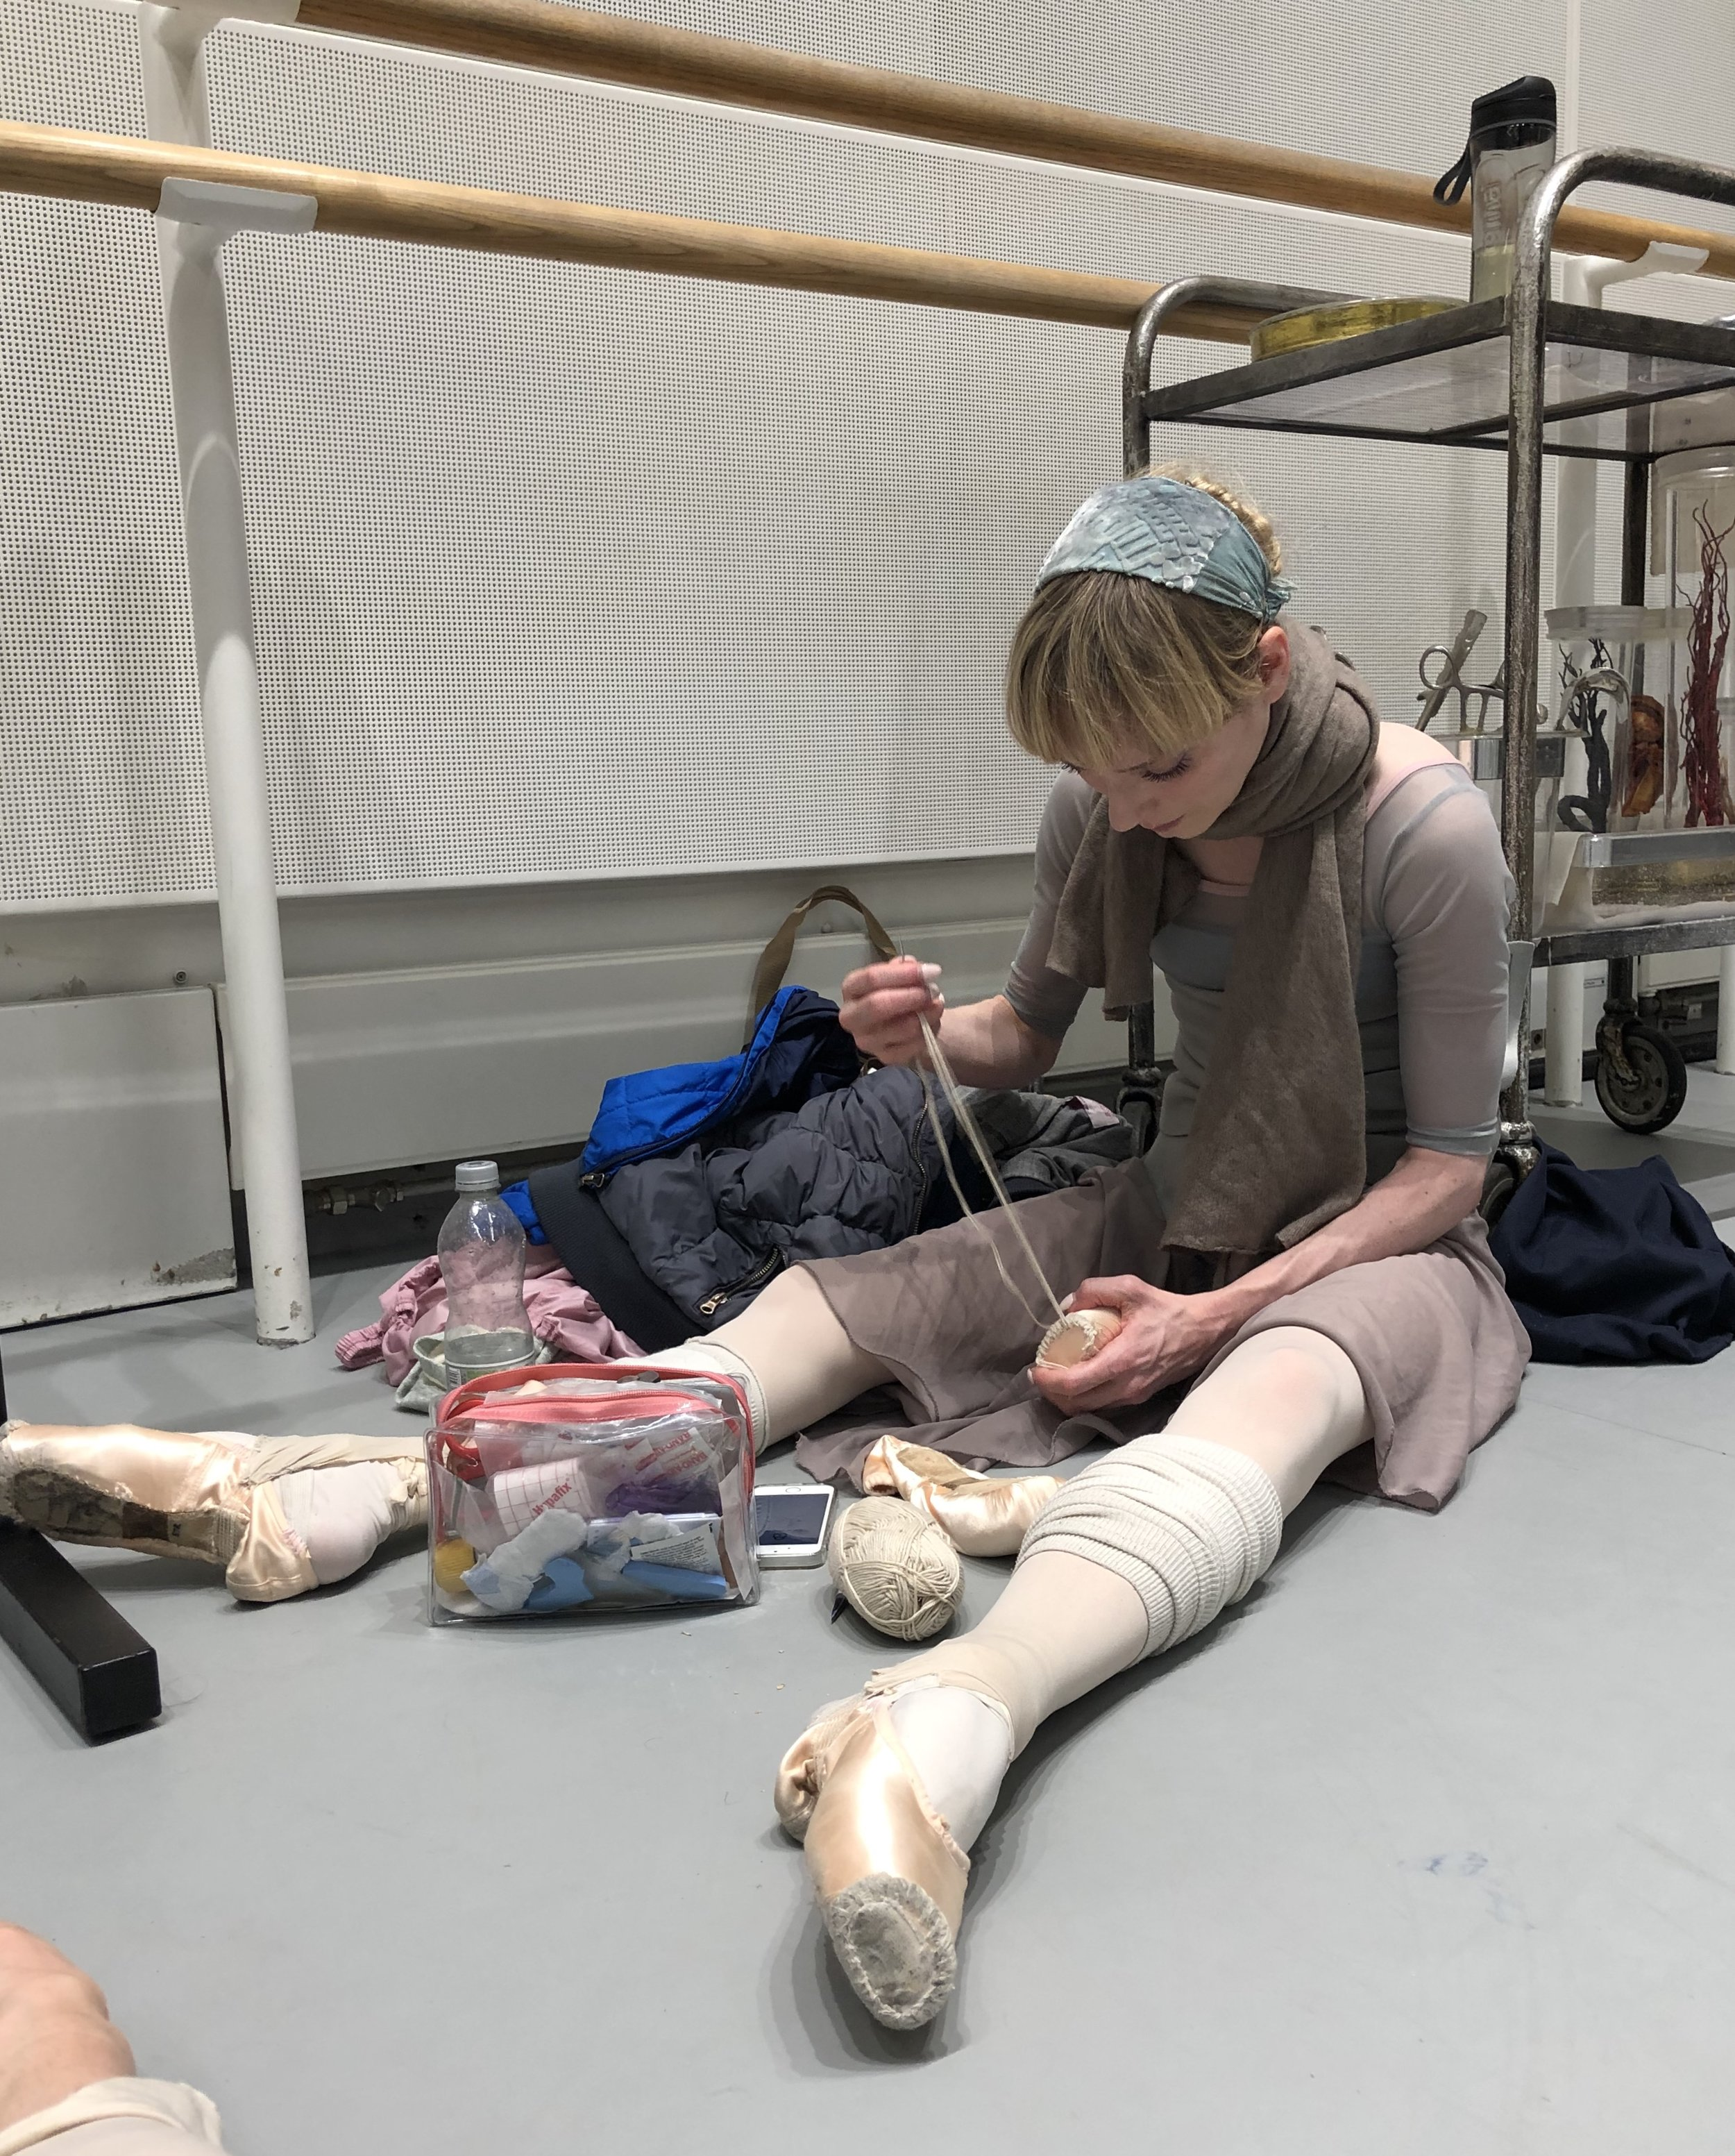 Sarah darning her pointe shoes.